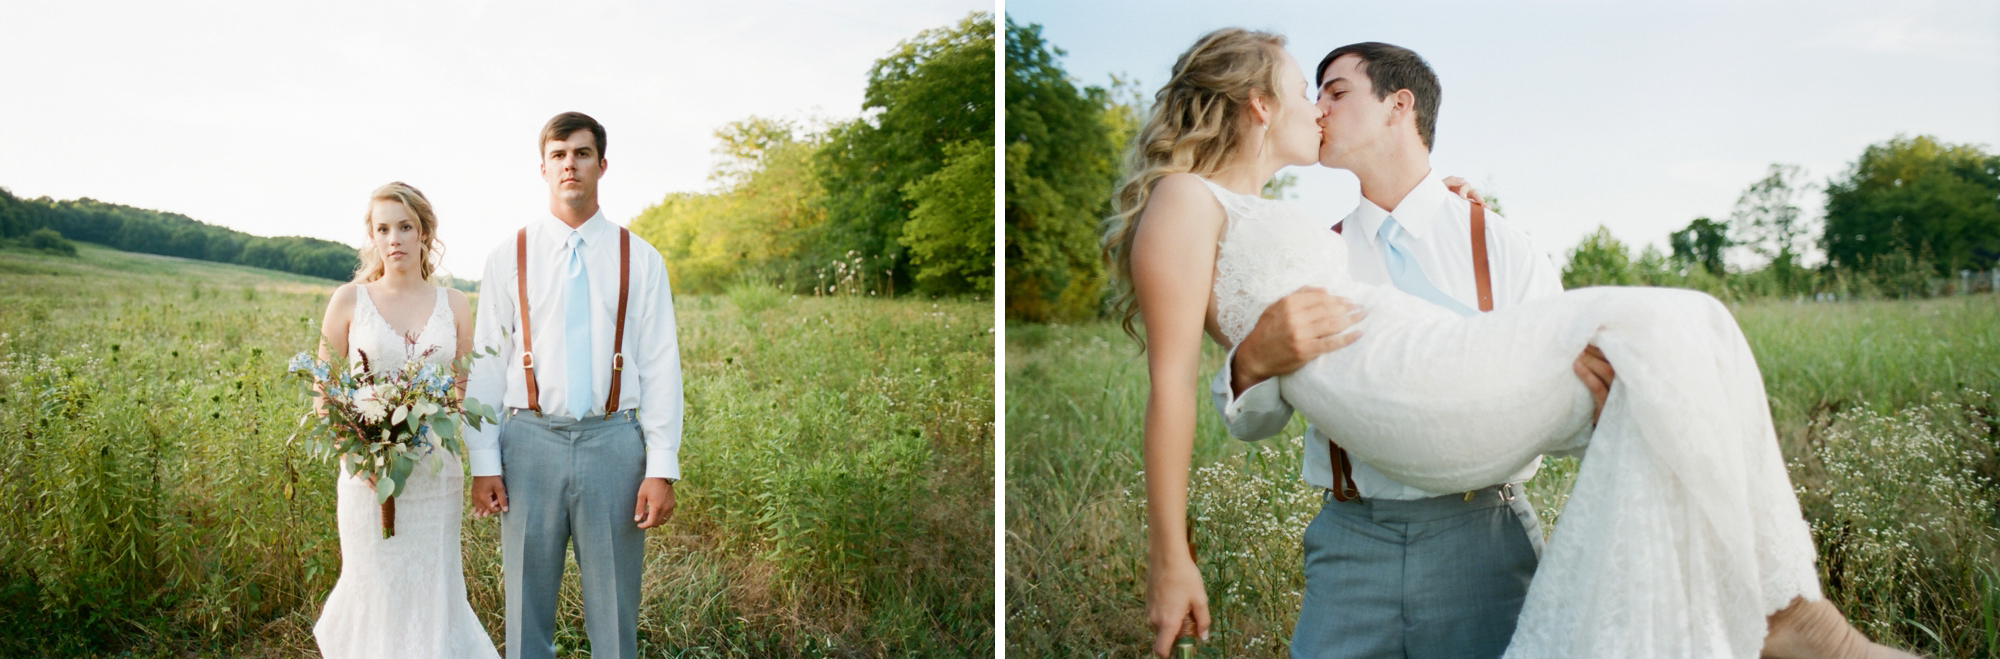 southern wedding film photographer_0071